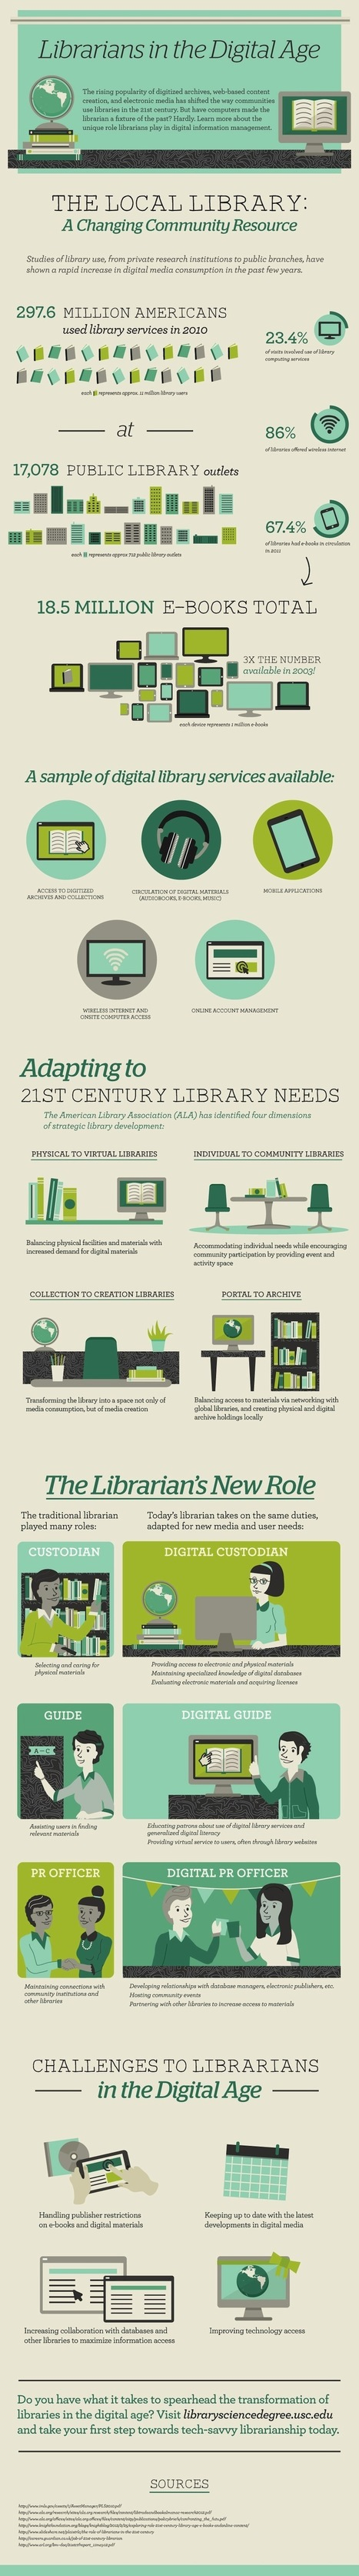 In digital age, librarians are needed more than ever [infographic] | Media and Information Literacy for Next Gen | Scoop.it